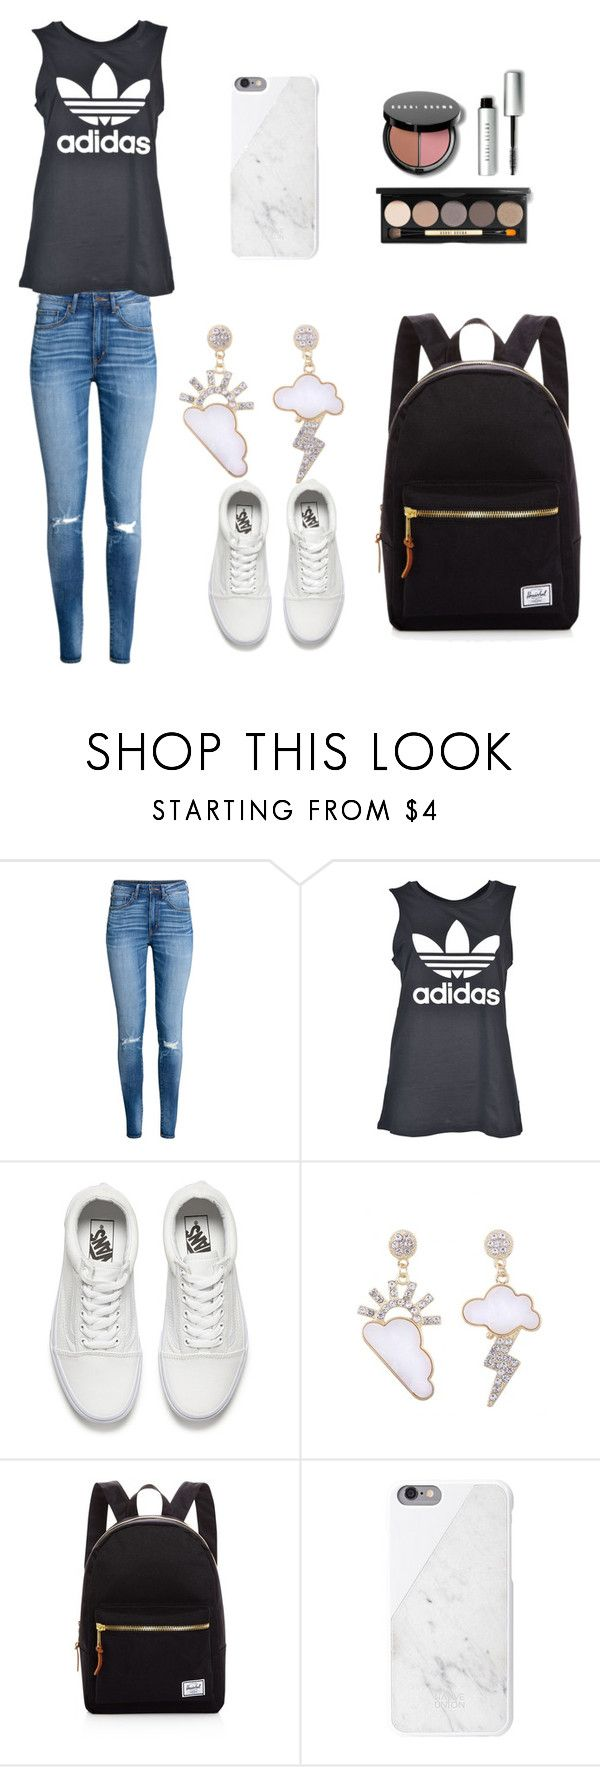 Untitled #43 by palaghia-teona on Polyvore featuring adidas, H&M, Herschel Supply Co., Vans and Bobbi Brown Cosmetics